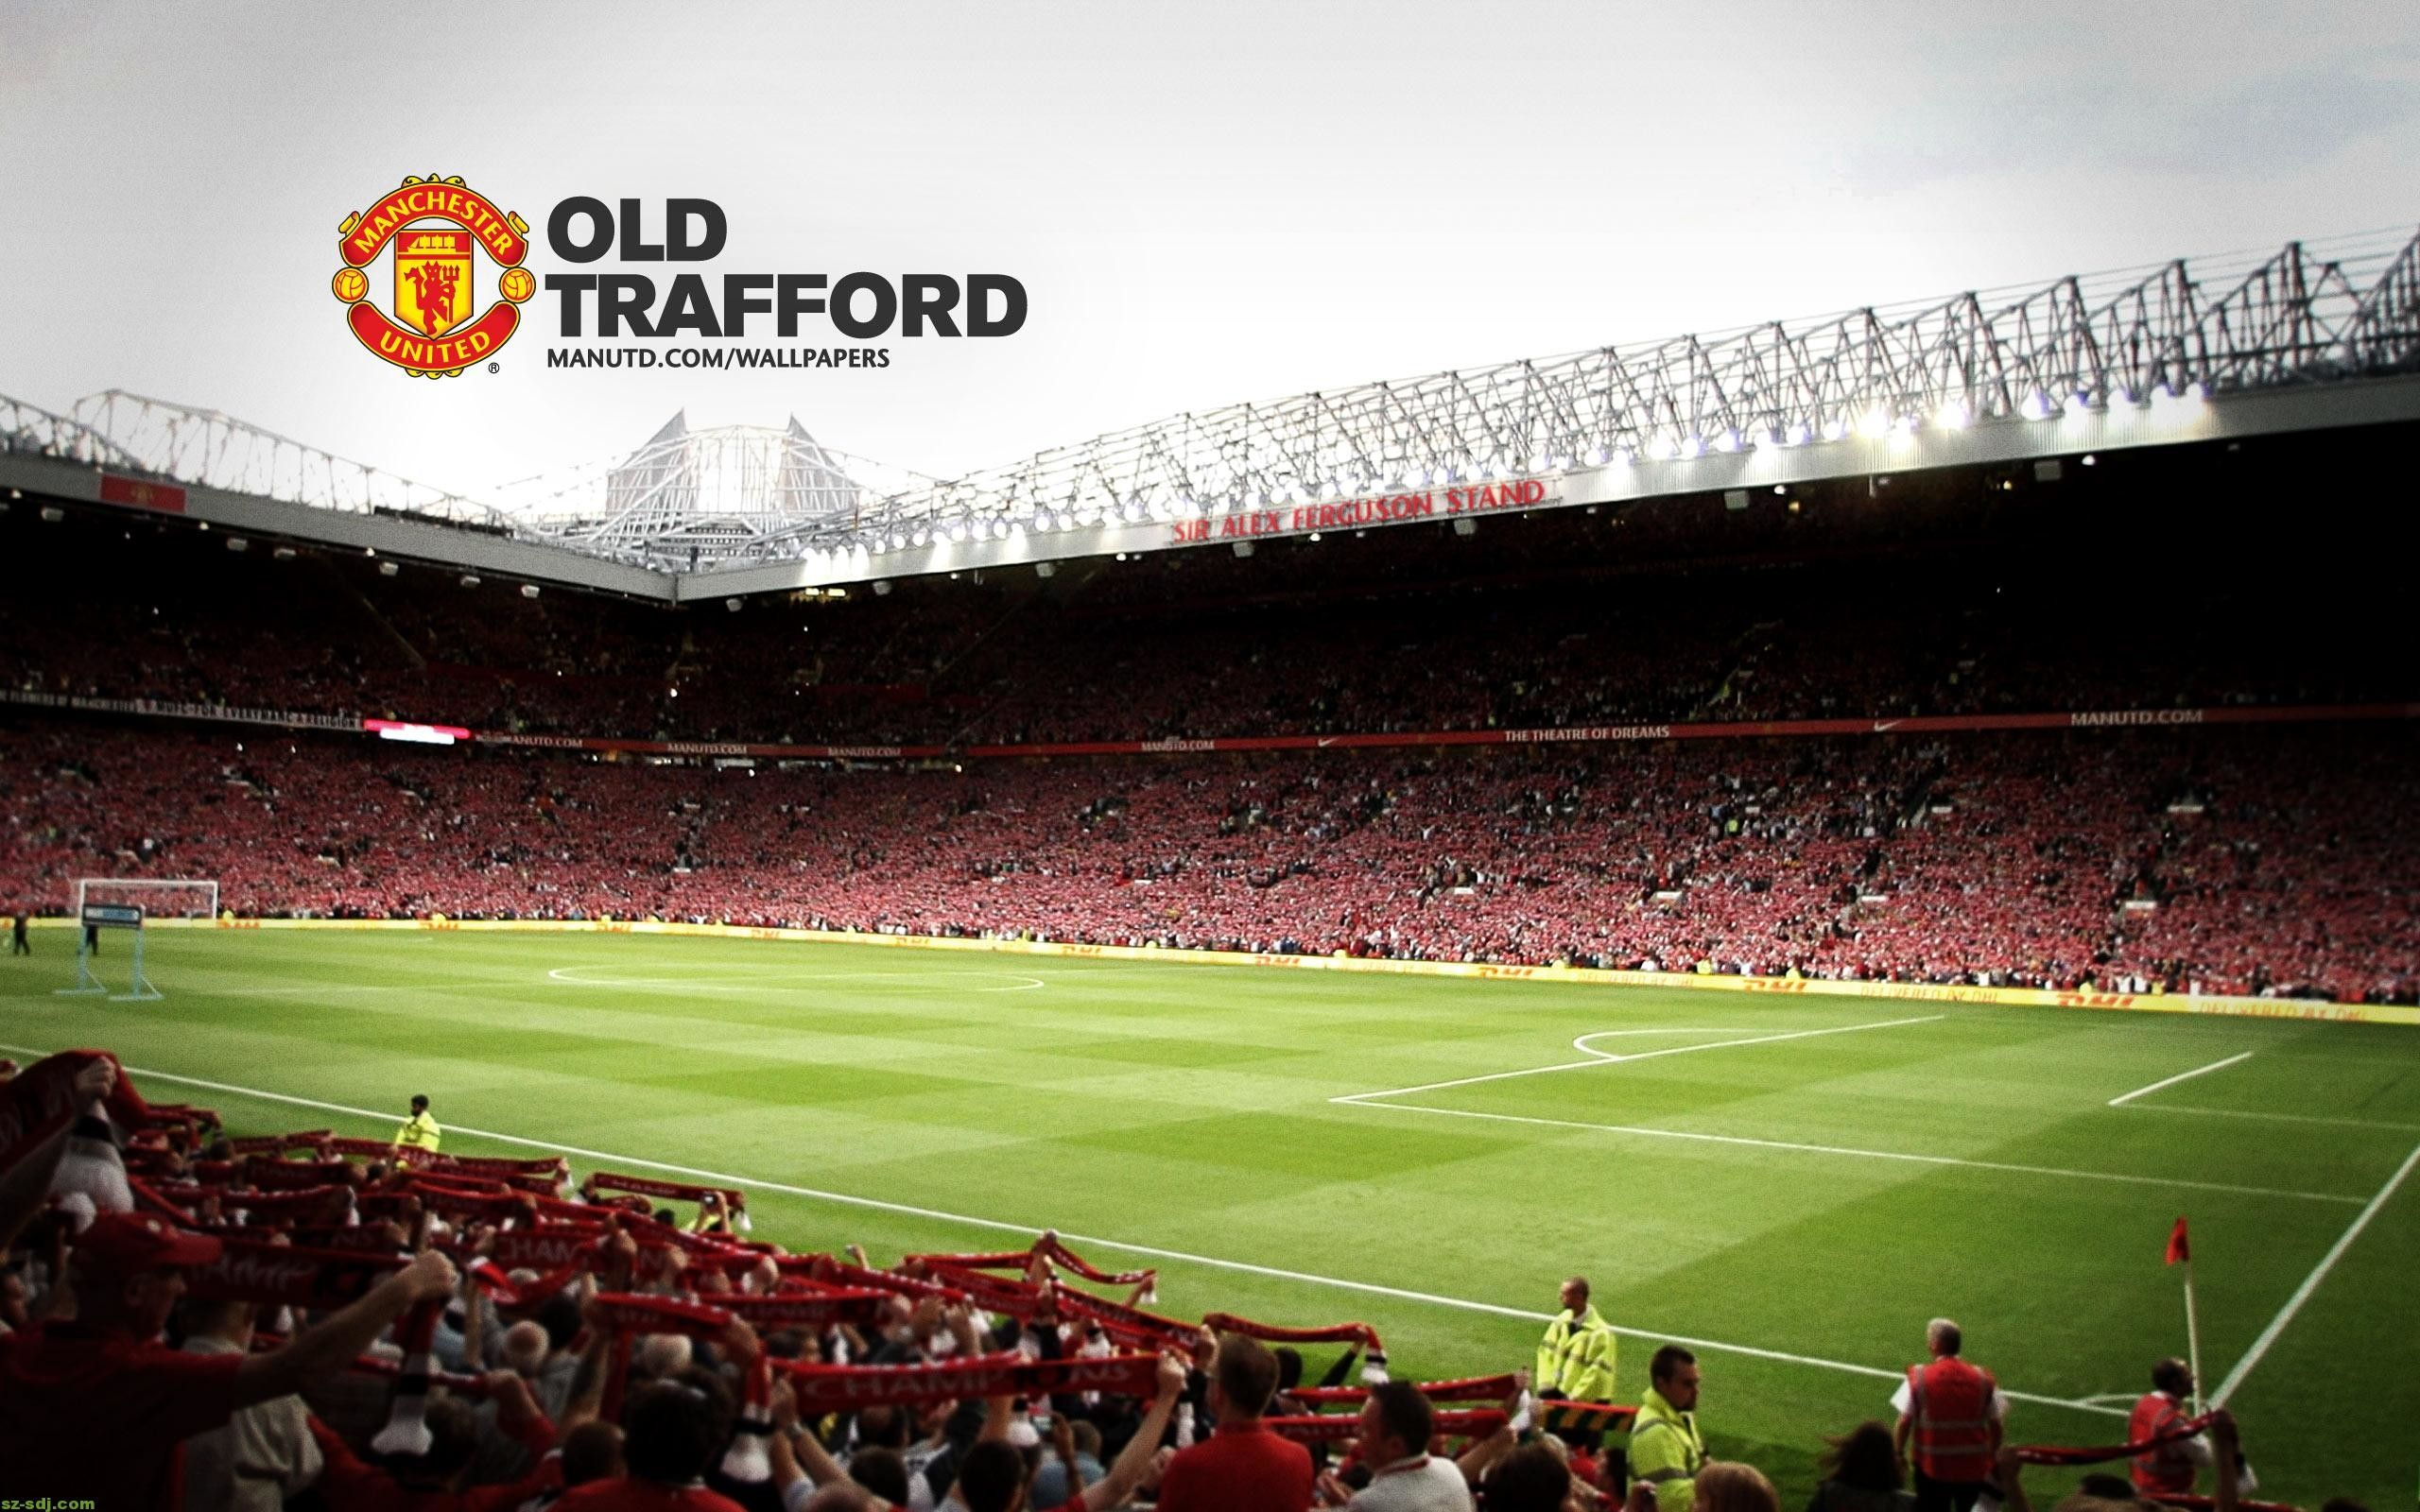 Res 2560x1600 Manchester United Backgrounds Manchester United Wallpaper Old Trafford Manchester United Logo